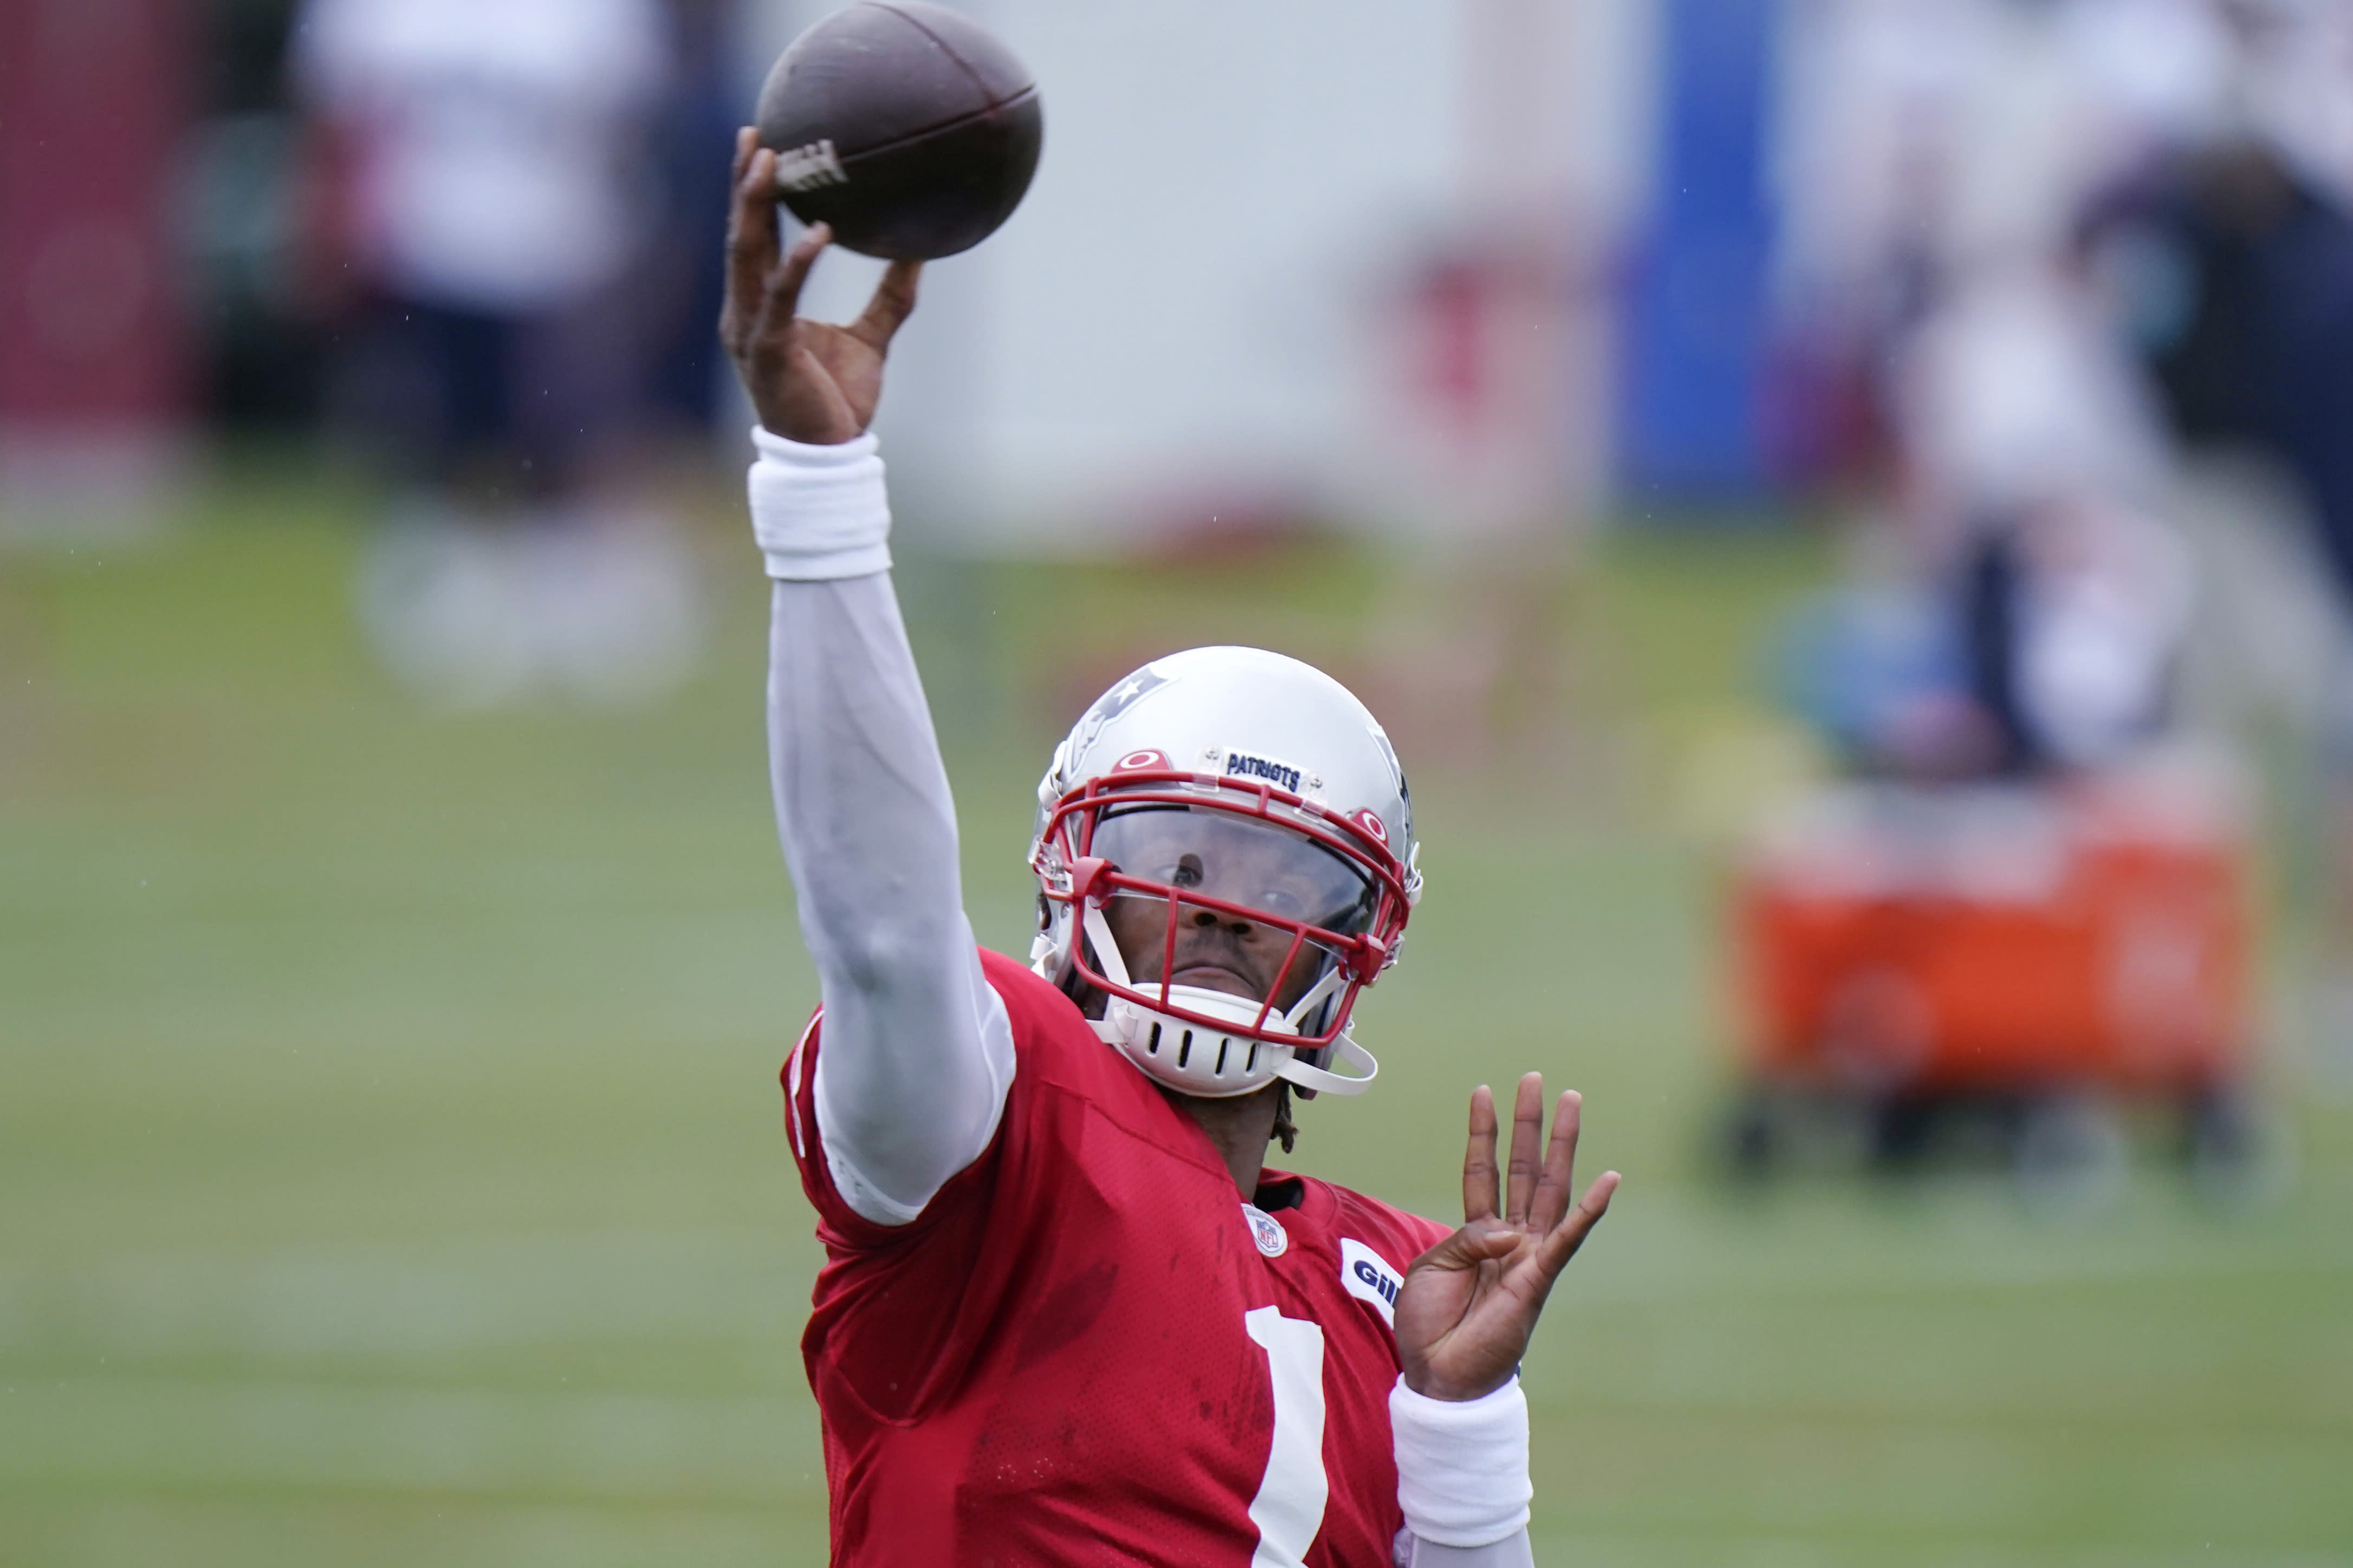 New England Patriots quarterback Cam Newton (1) throws a pass during an NFL football training camp practice, Thursday Aug. 27, 2020 in Foxborough, Mass. (AP Photo/Steven Senne, Pool)